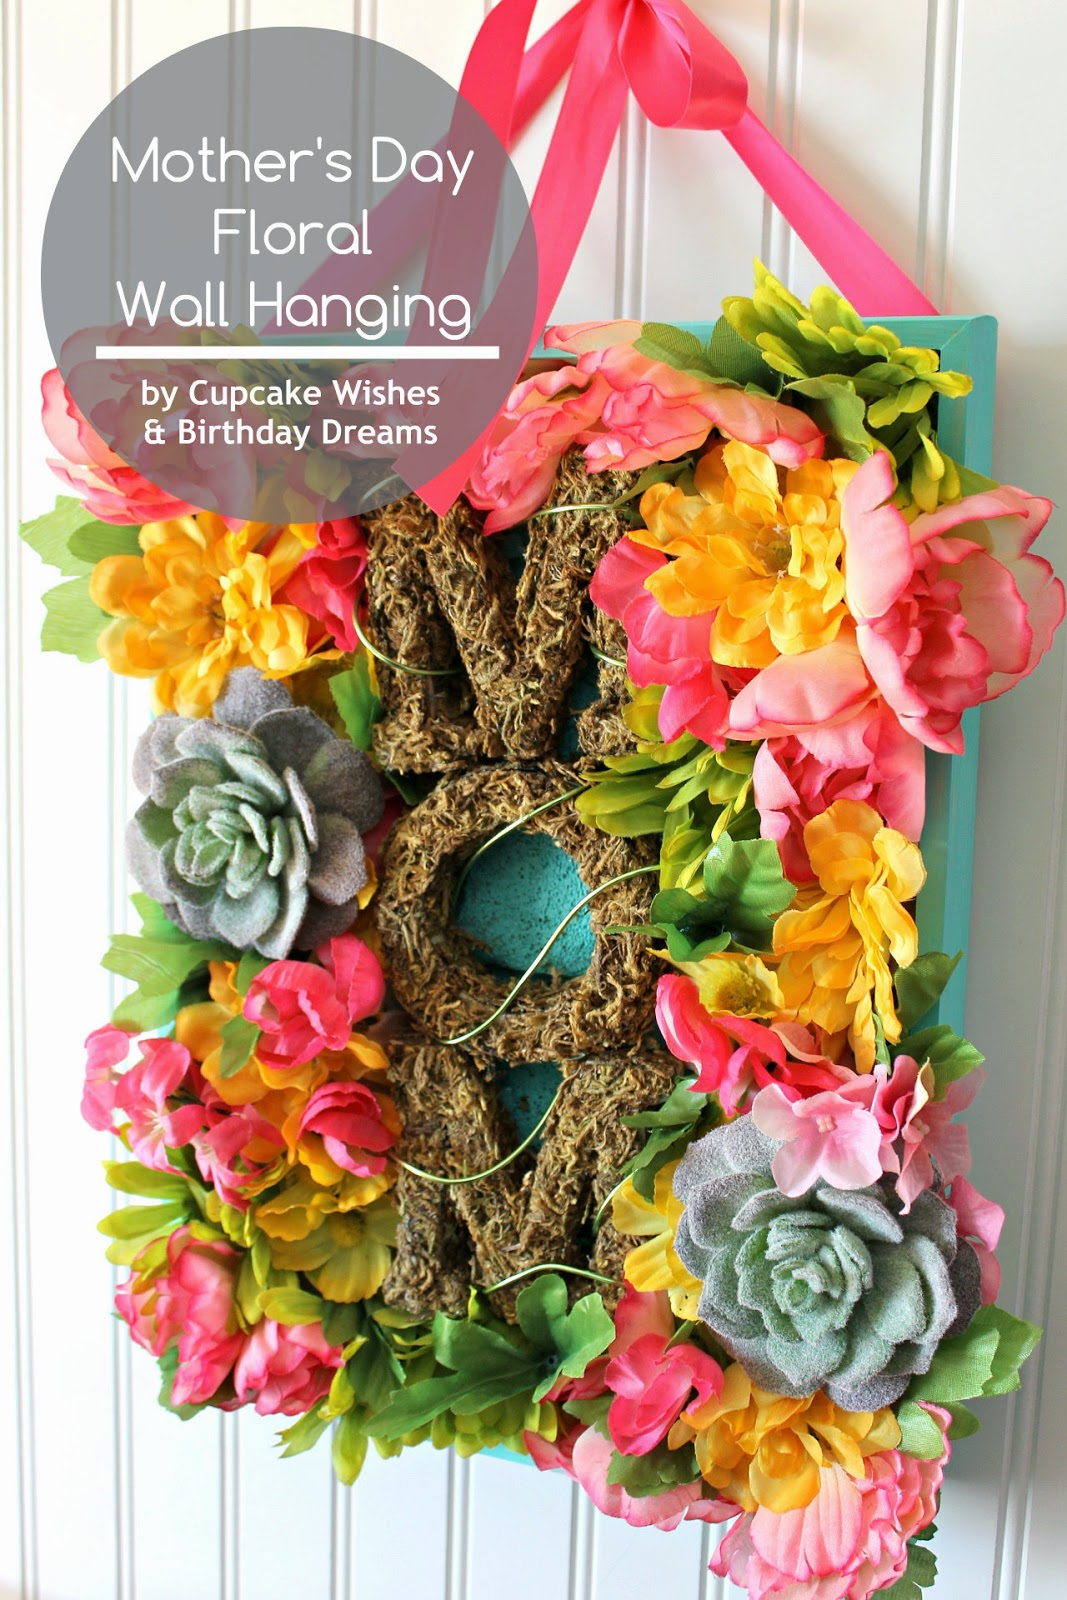 Cupcake wishes birthday dreams mothers day floral wall hanging mothers day floral wall hanging izmirmasajfo